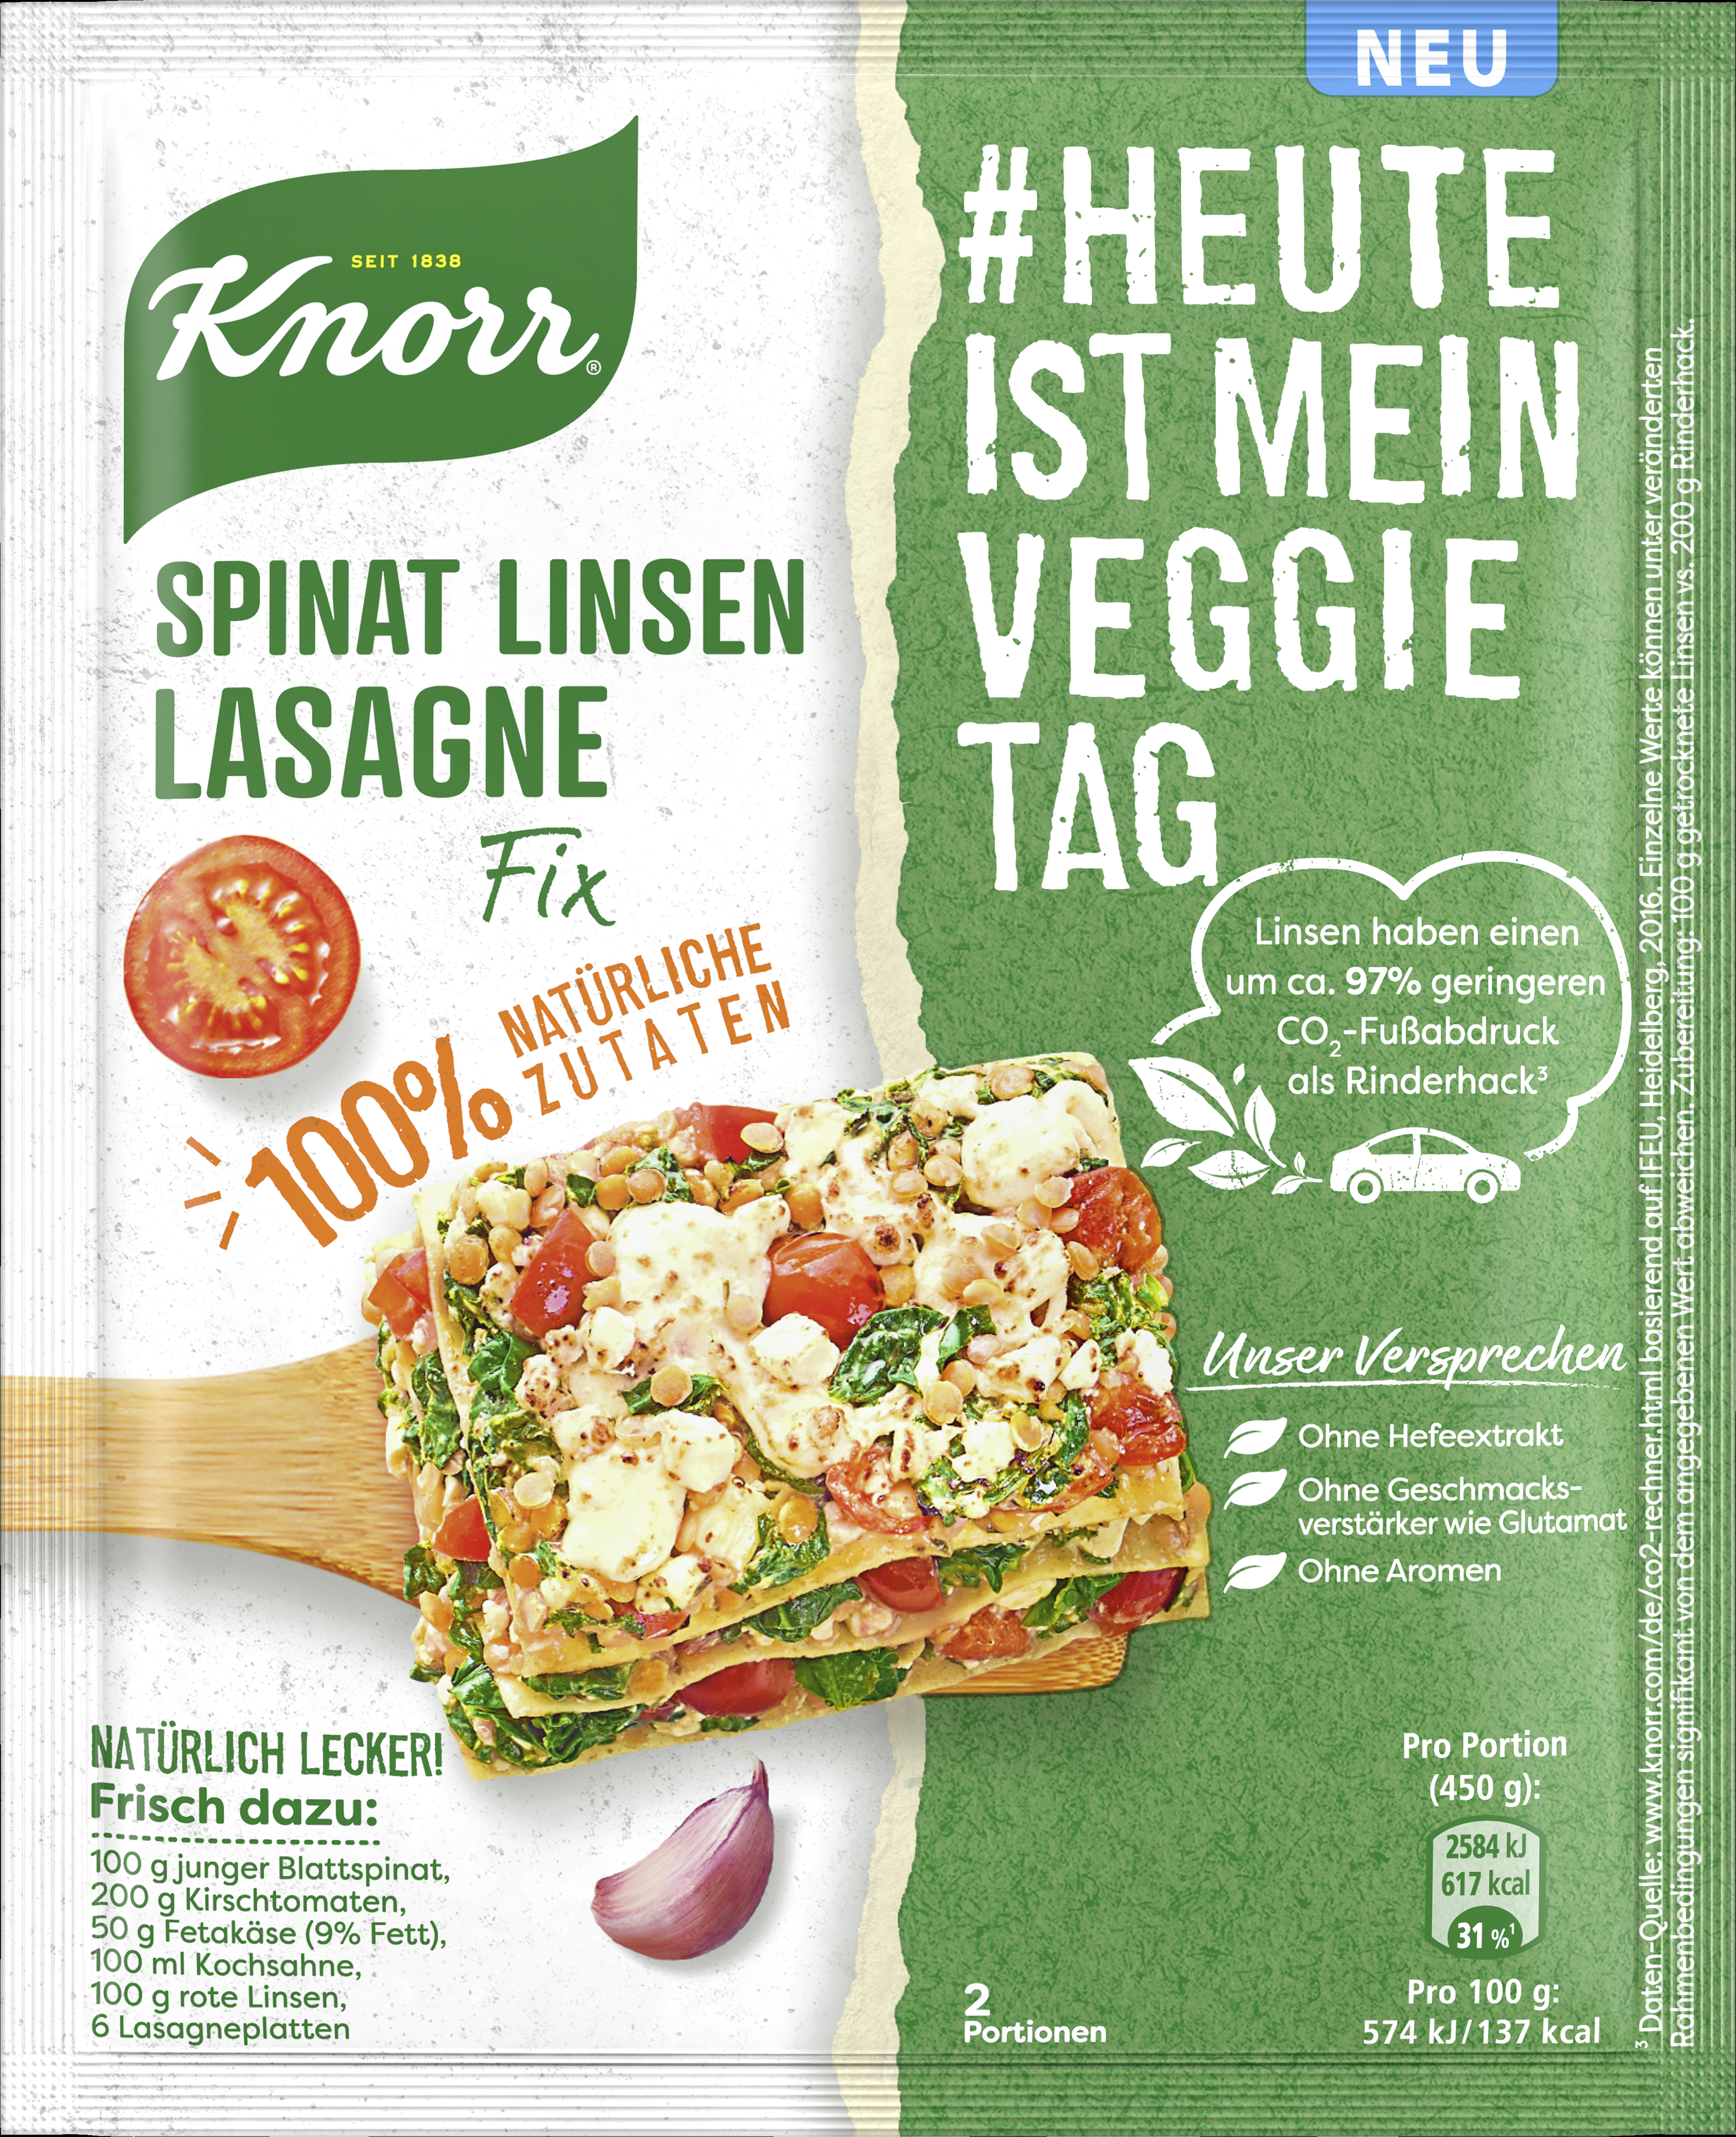 Knorr Fix Nat.Spi Lins x BT